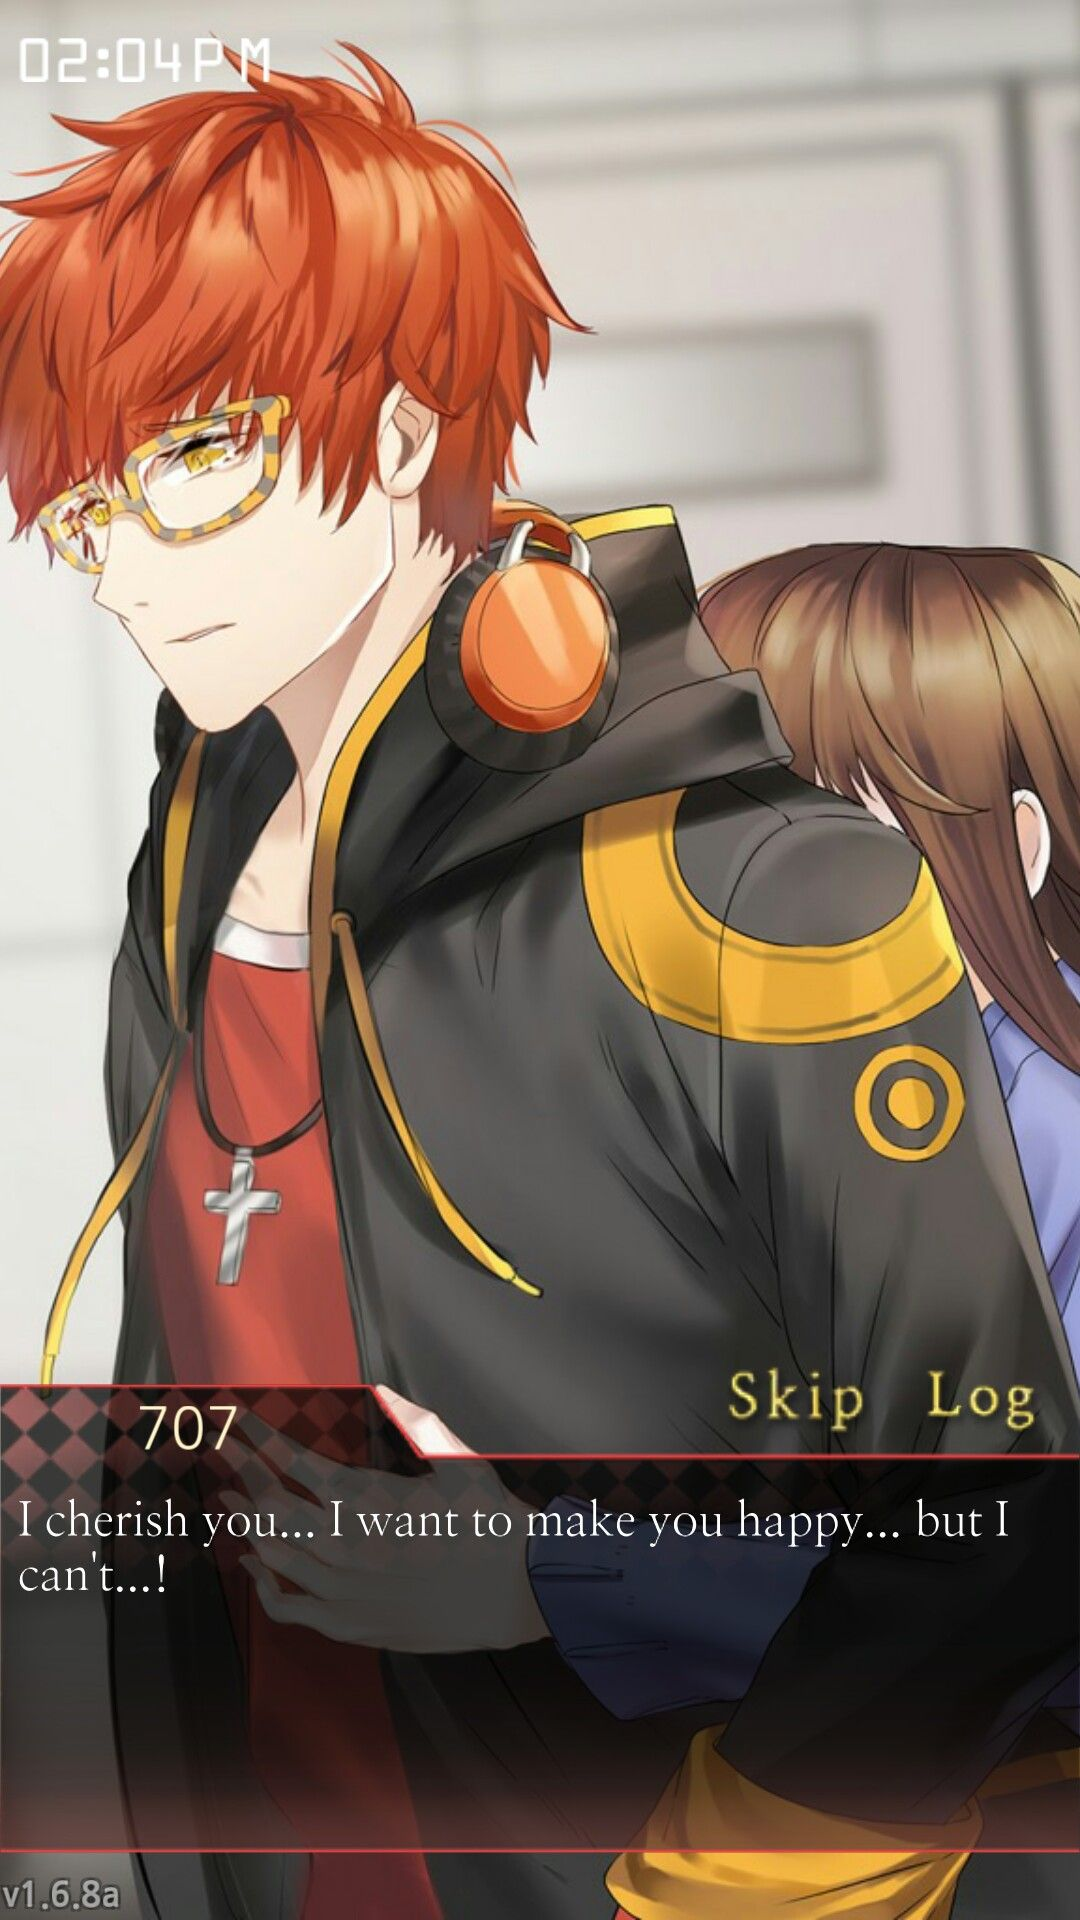 At first I don't understand why 707 route having so much